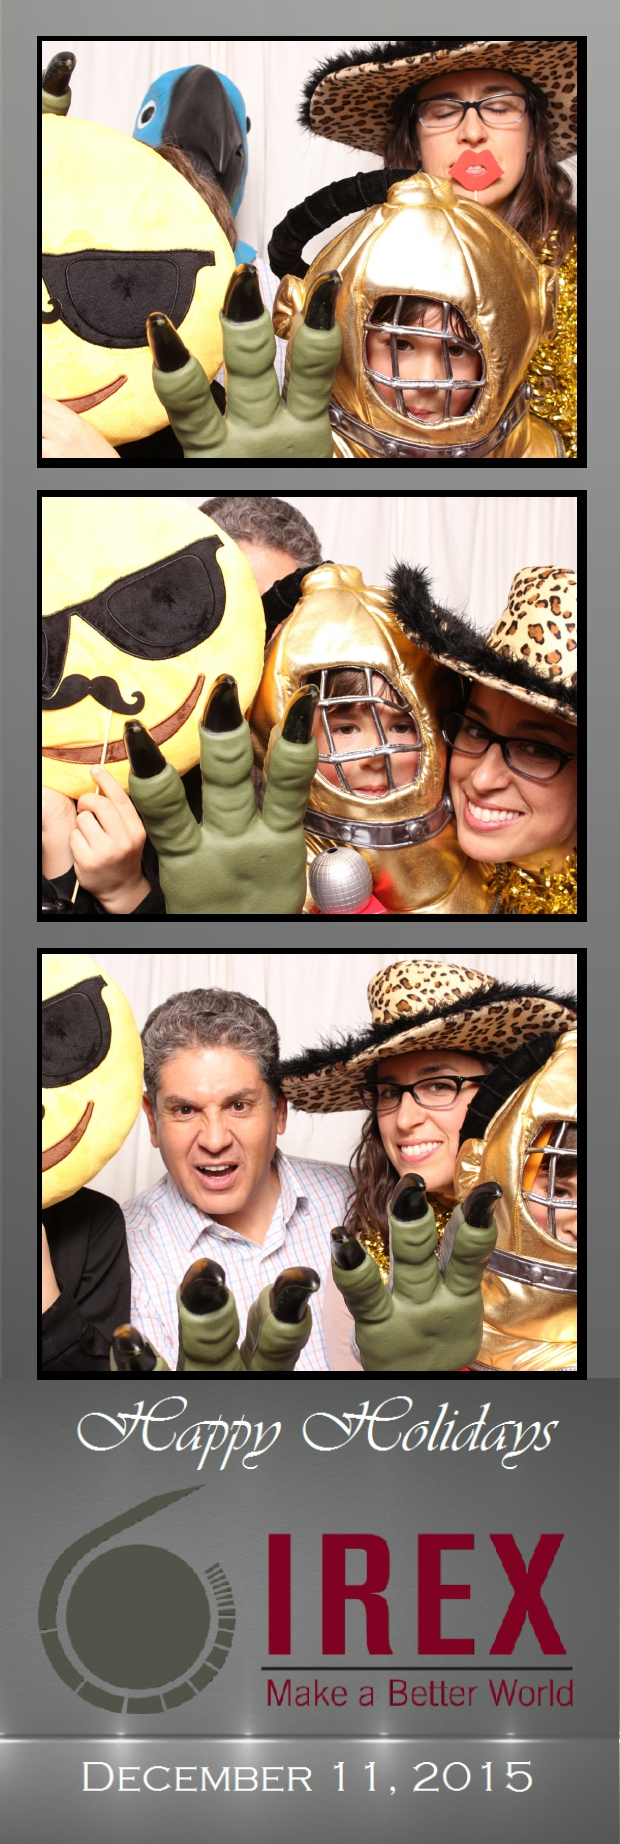 Guest House Events Photo Booth Strips IREX (58).jpg